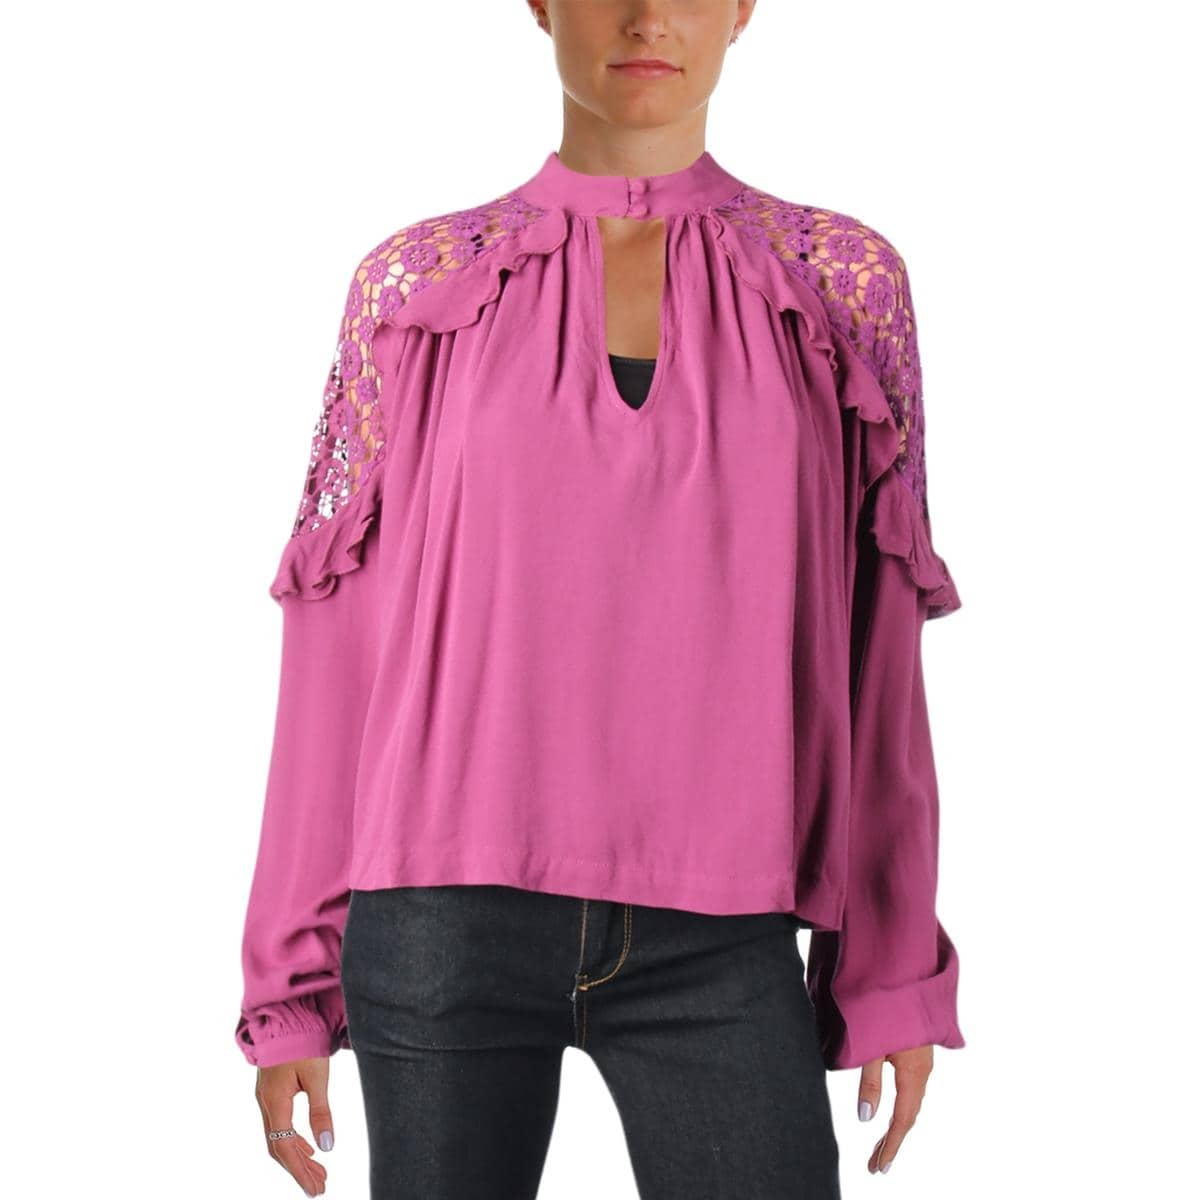 f8b4bf13eae Shop Free People Womens Blouse Crochet Trim V-Neck - Free Shipping On  Orders Over $45 - Overstock - 23147232